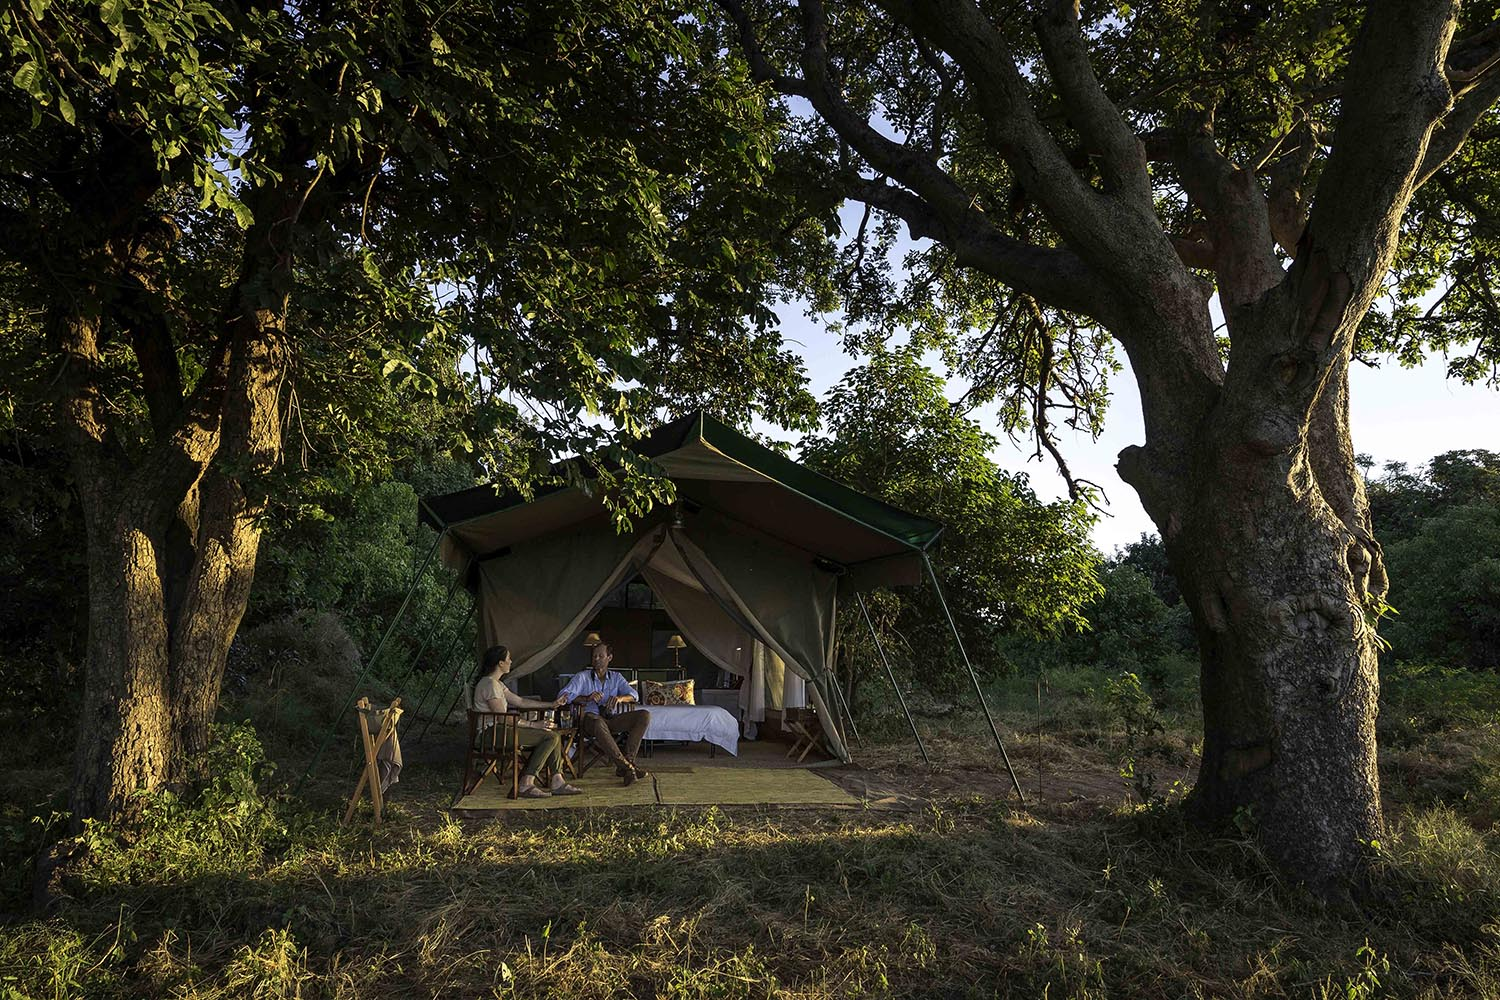 johns camp mana-pools-zimbabwe-accommodation-africa-safari-zambia-in-style-meru-styled-tents-couple